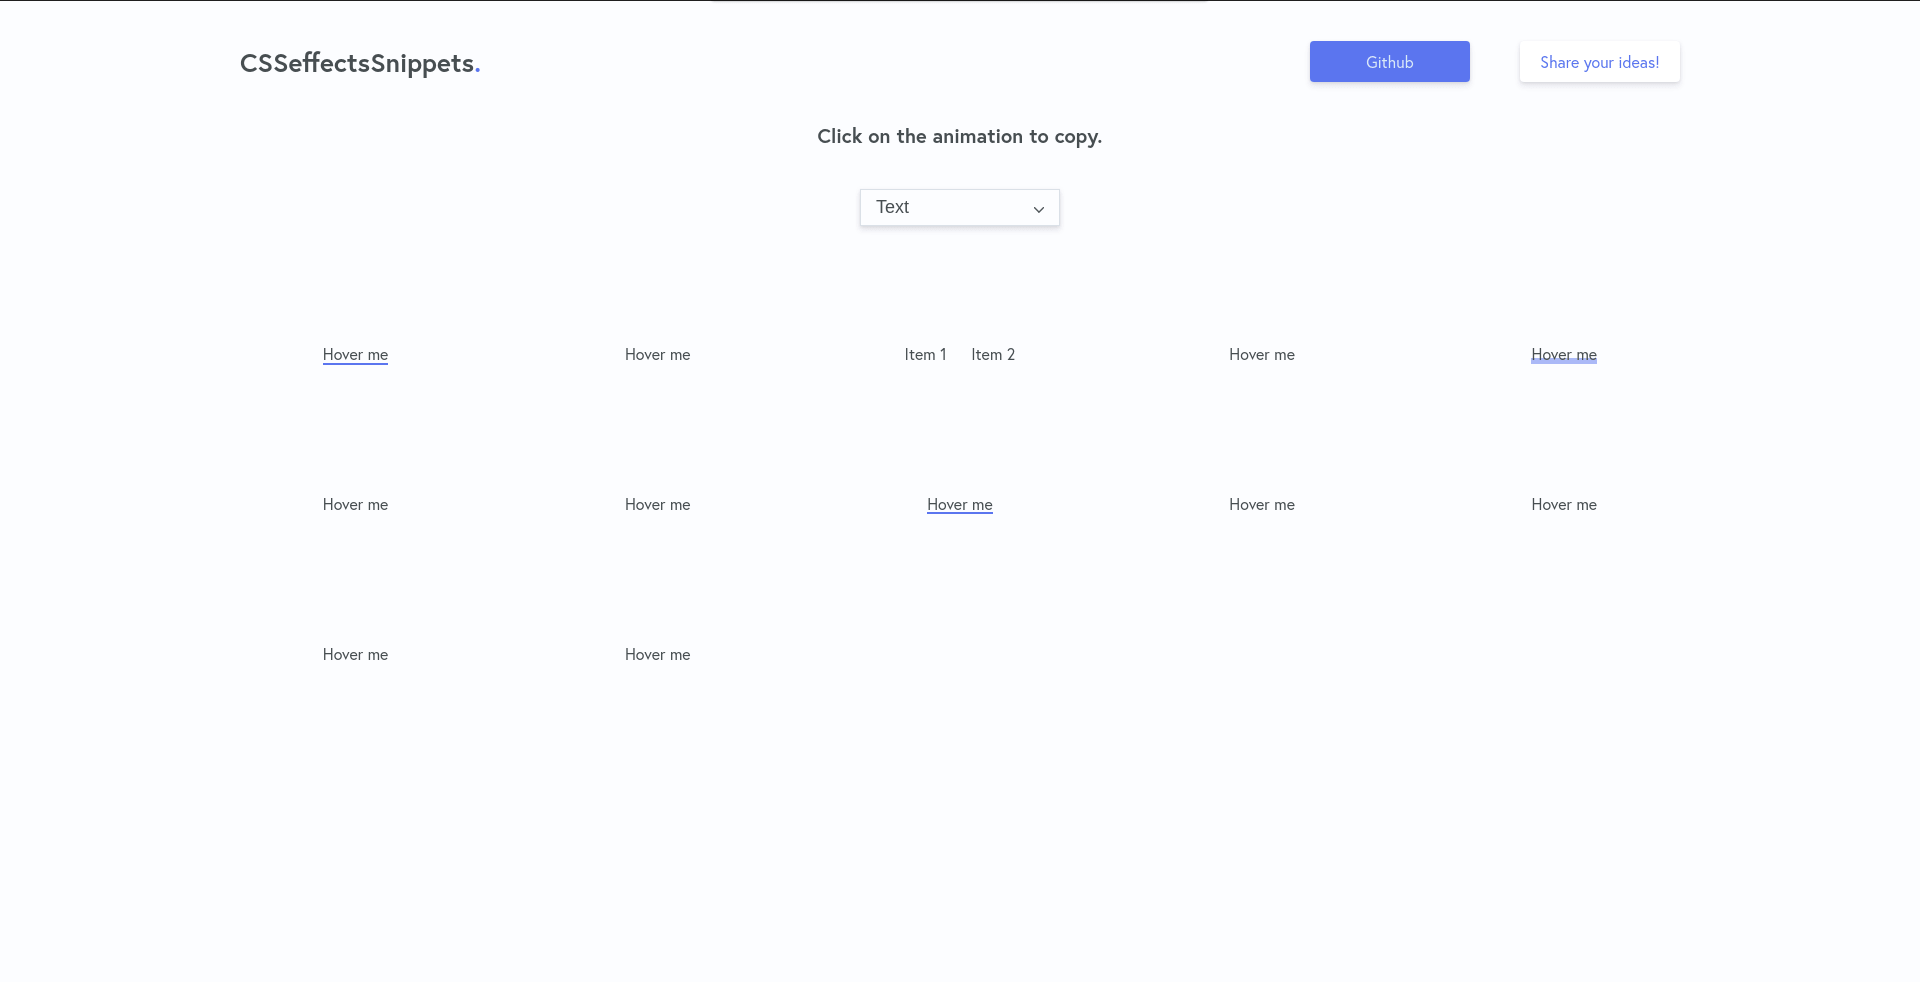 CSSeffectsSnippets landing page